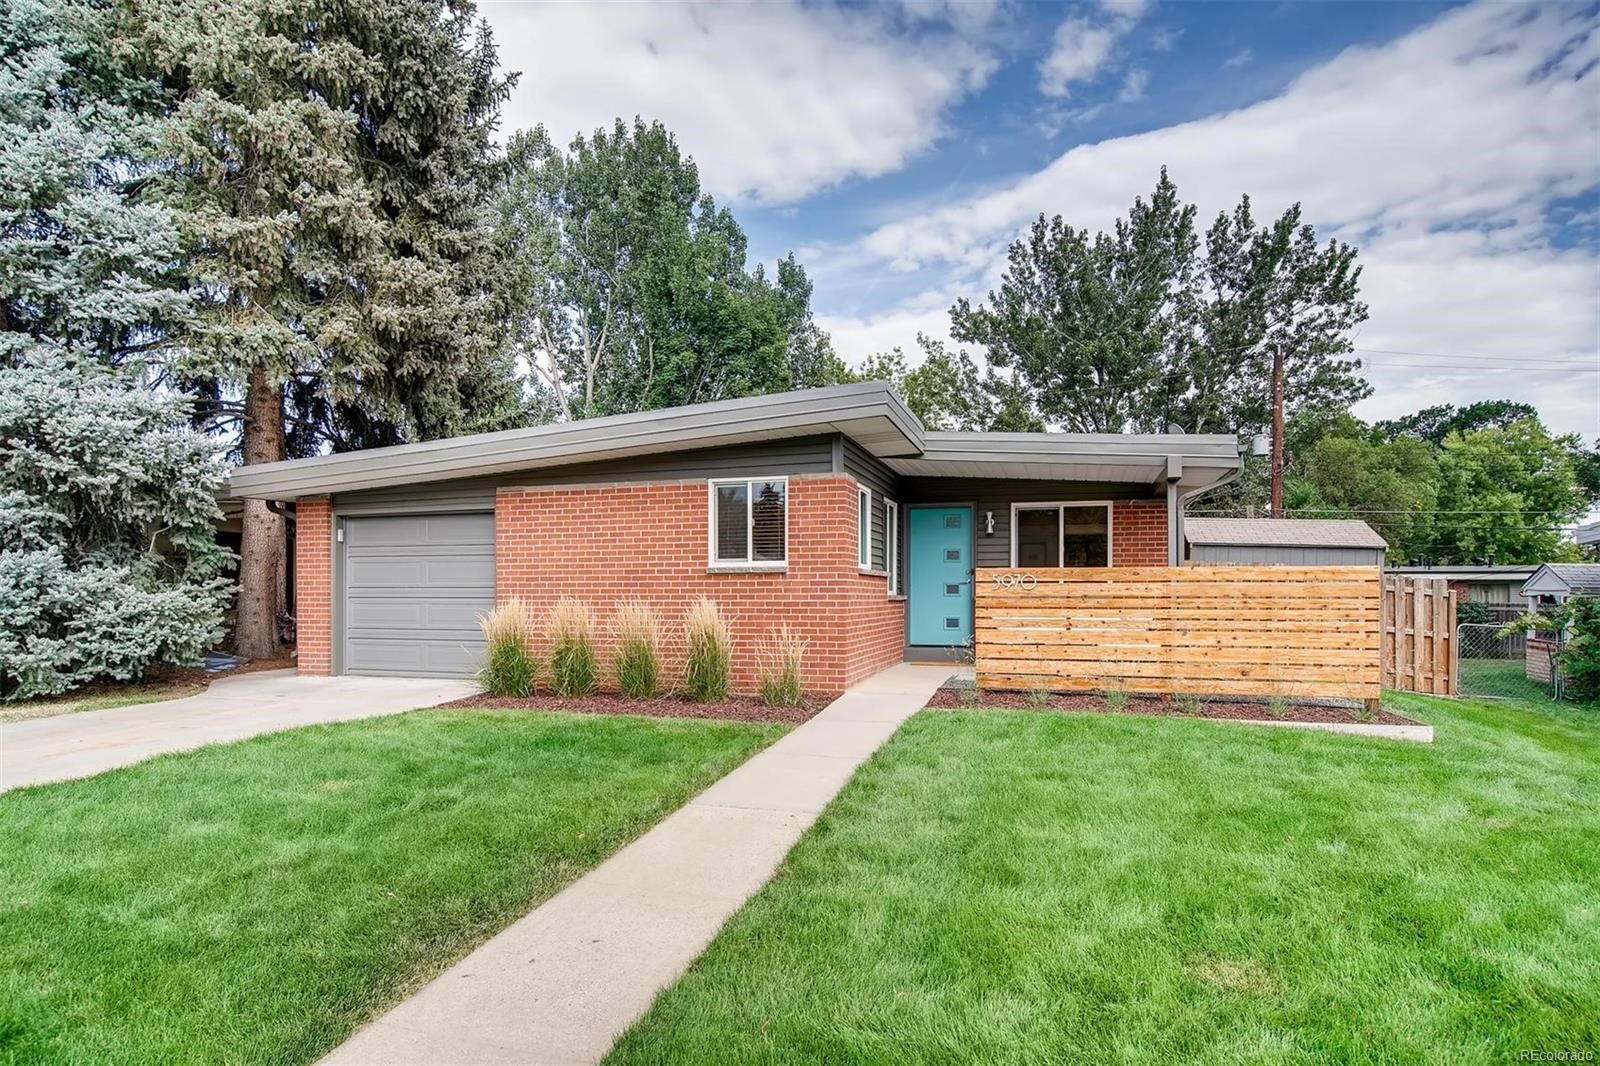 MLS# 4109118 - 2 - 5970 Dudley Court, Arvada, CO 80004